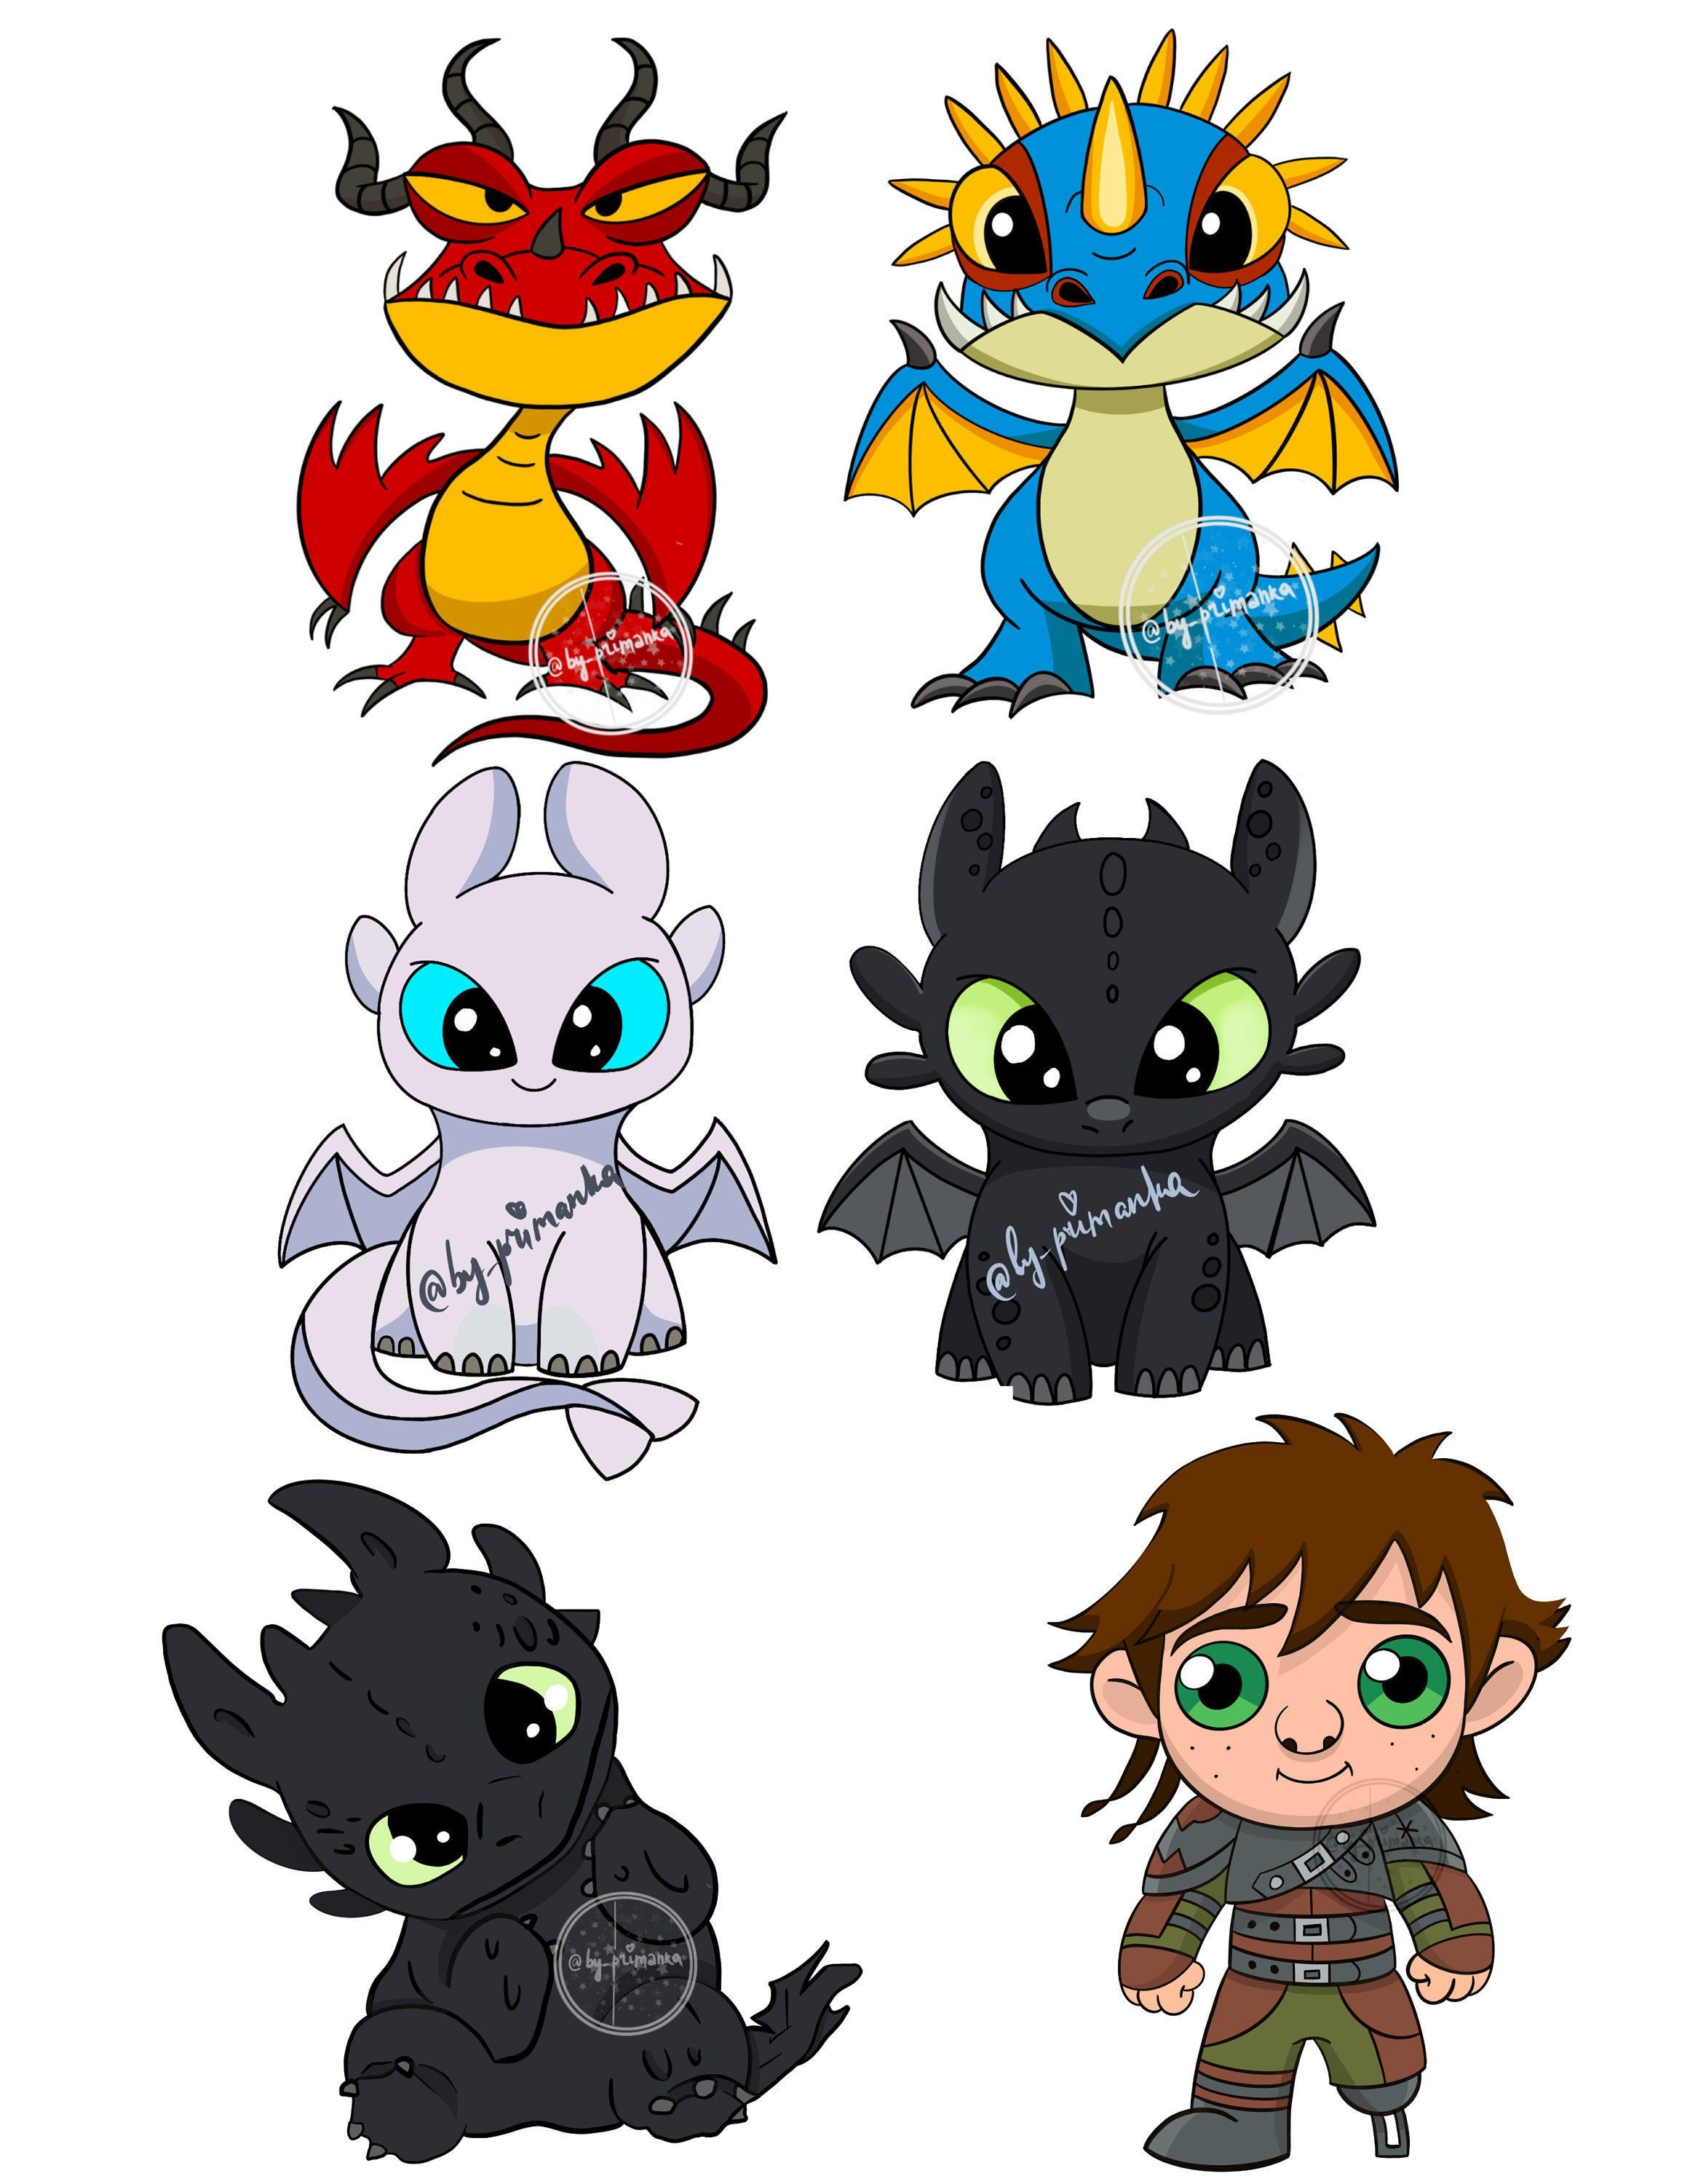 6 Png Baby Dragons Clipart Toothless Night Fury Stormfly Etsy In 2021 How Train Your Dragon Baby Dragon How To Train Your Dragon